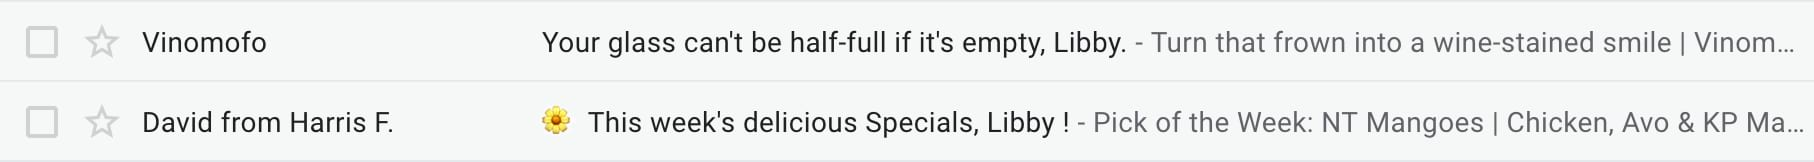 personalized email subject lines from Vinomofo and Harris Farm